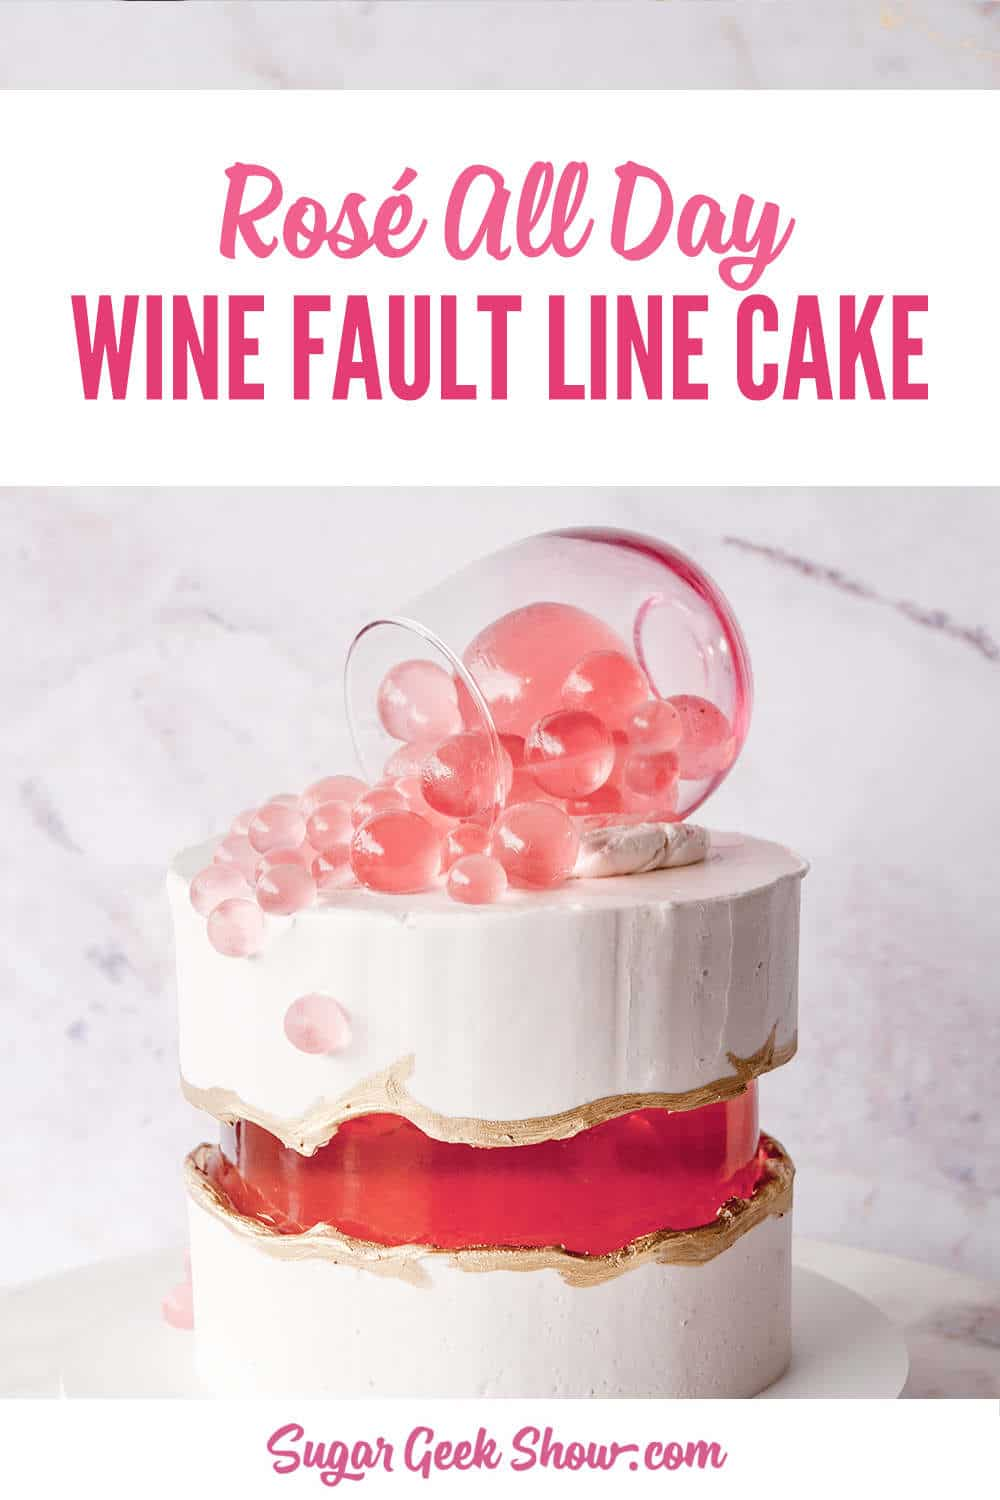 rose fault line cake tutorial made with rose wine gummy and pink champagne cake